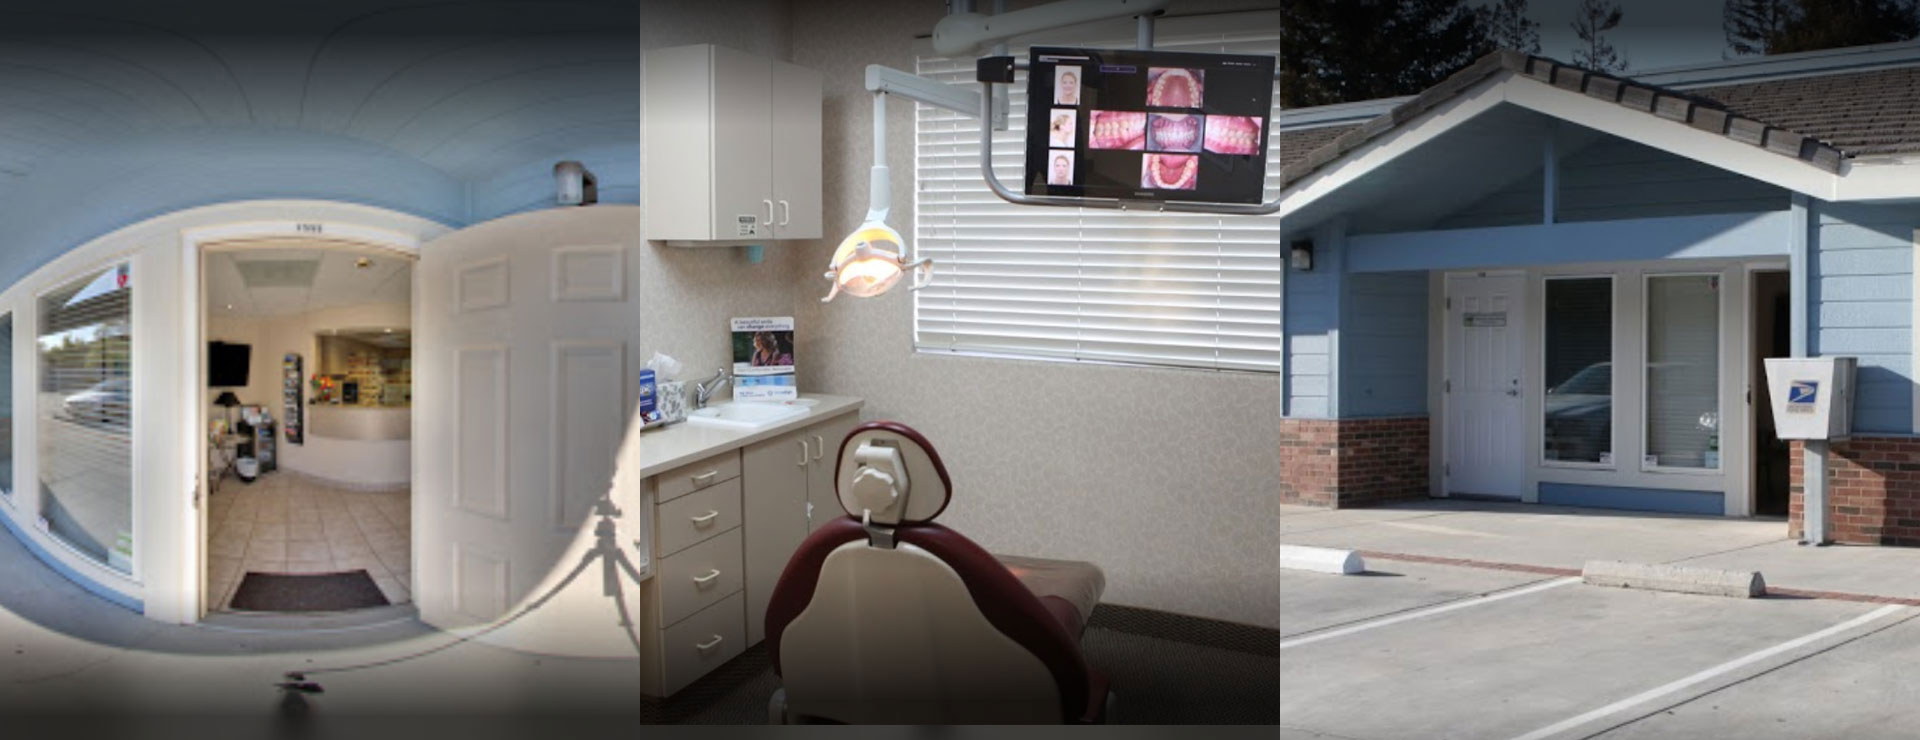 Todd S. Adams DDS Office Images